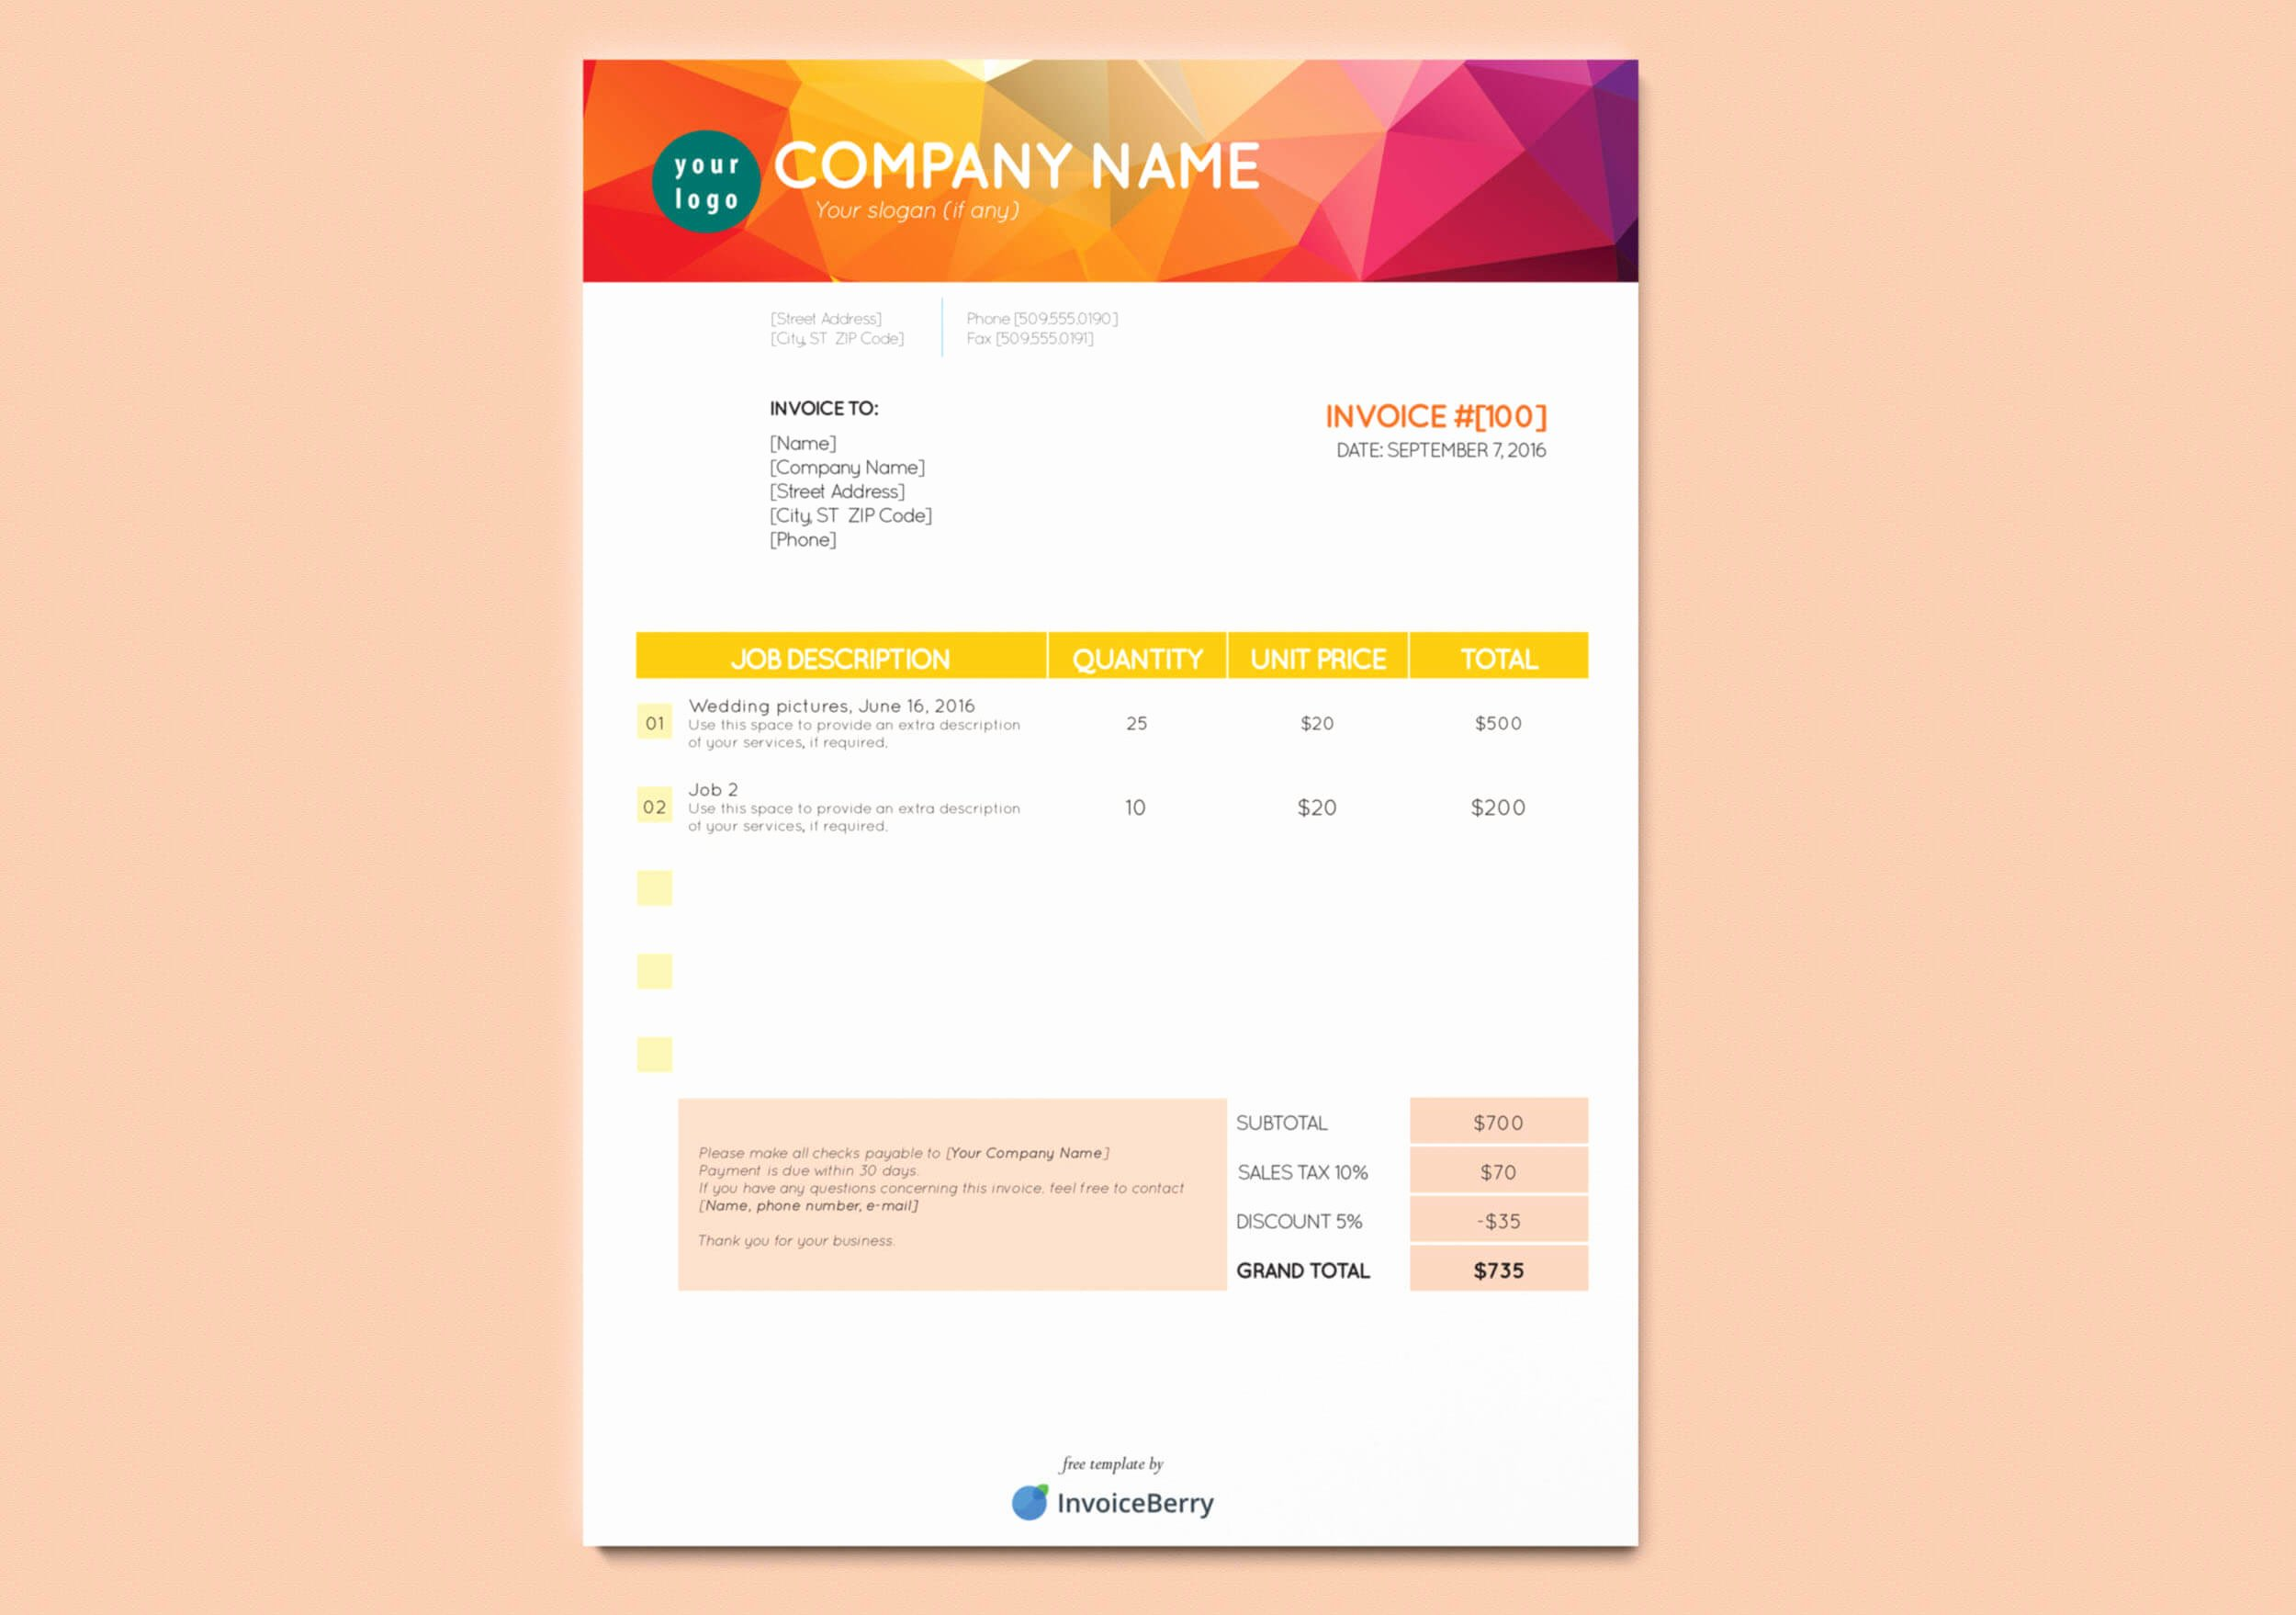 Free New Indesign Invoice Templates